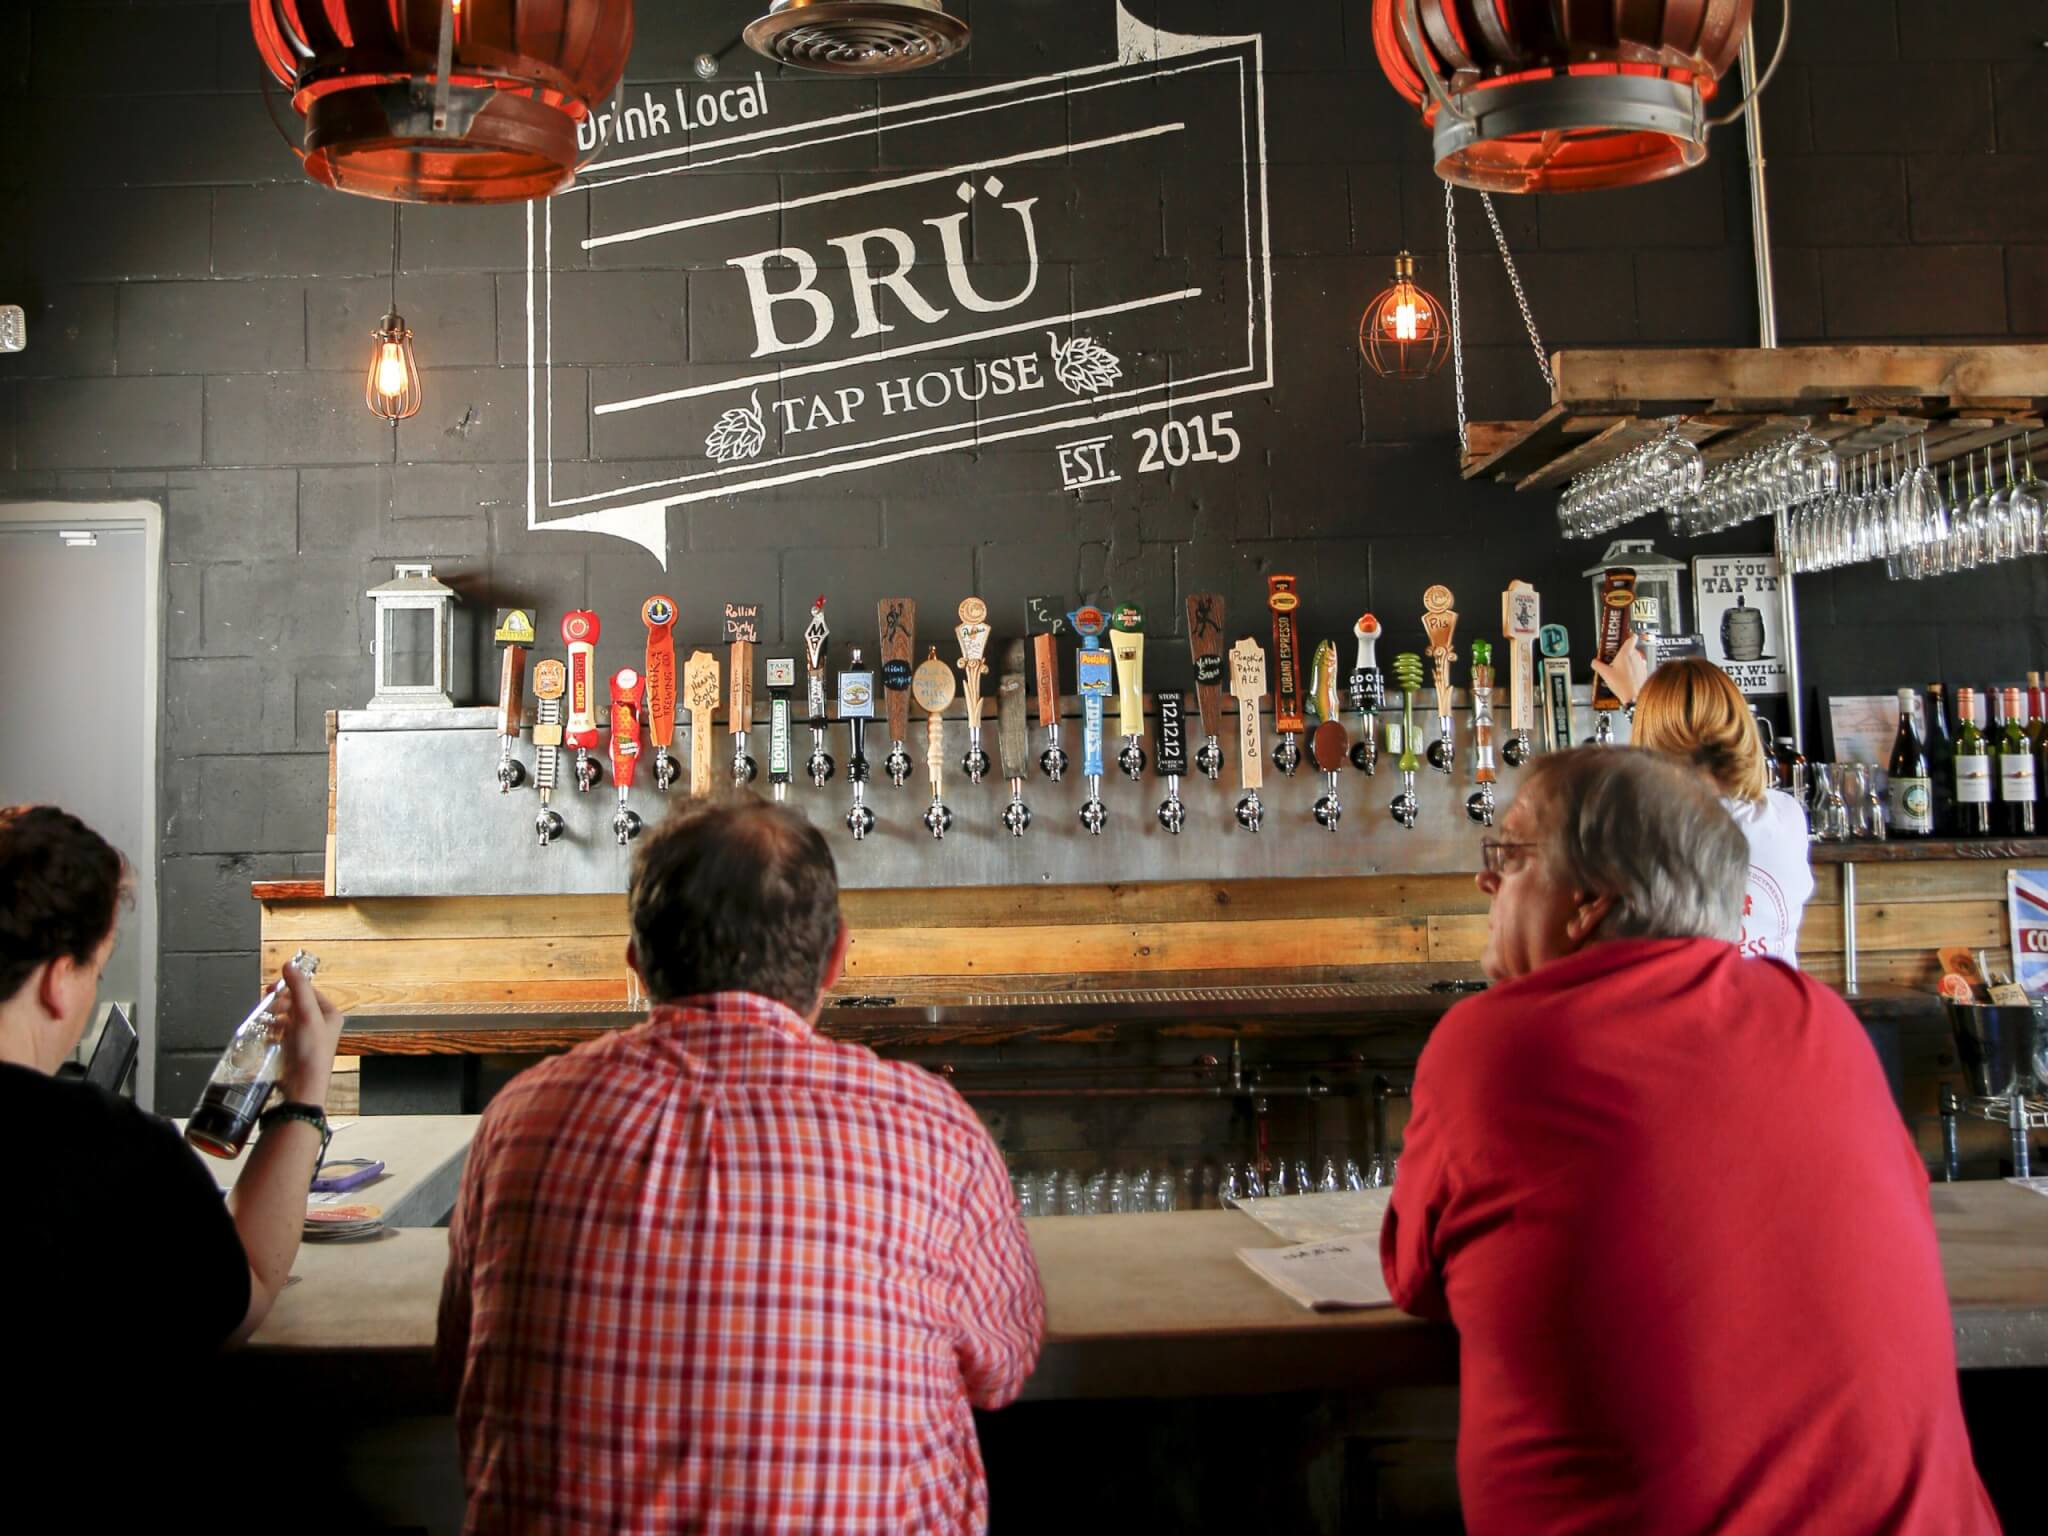 Interior, Bru Tap House, Tavares. Three people are sitting at the bar.